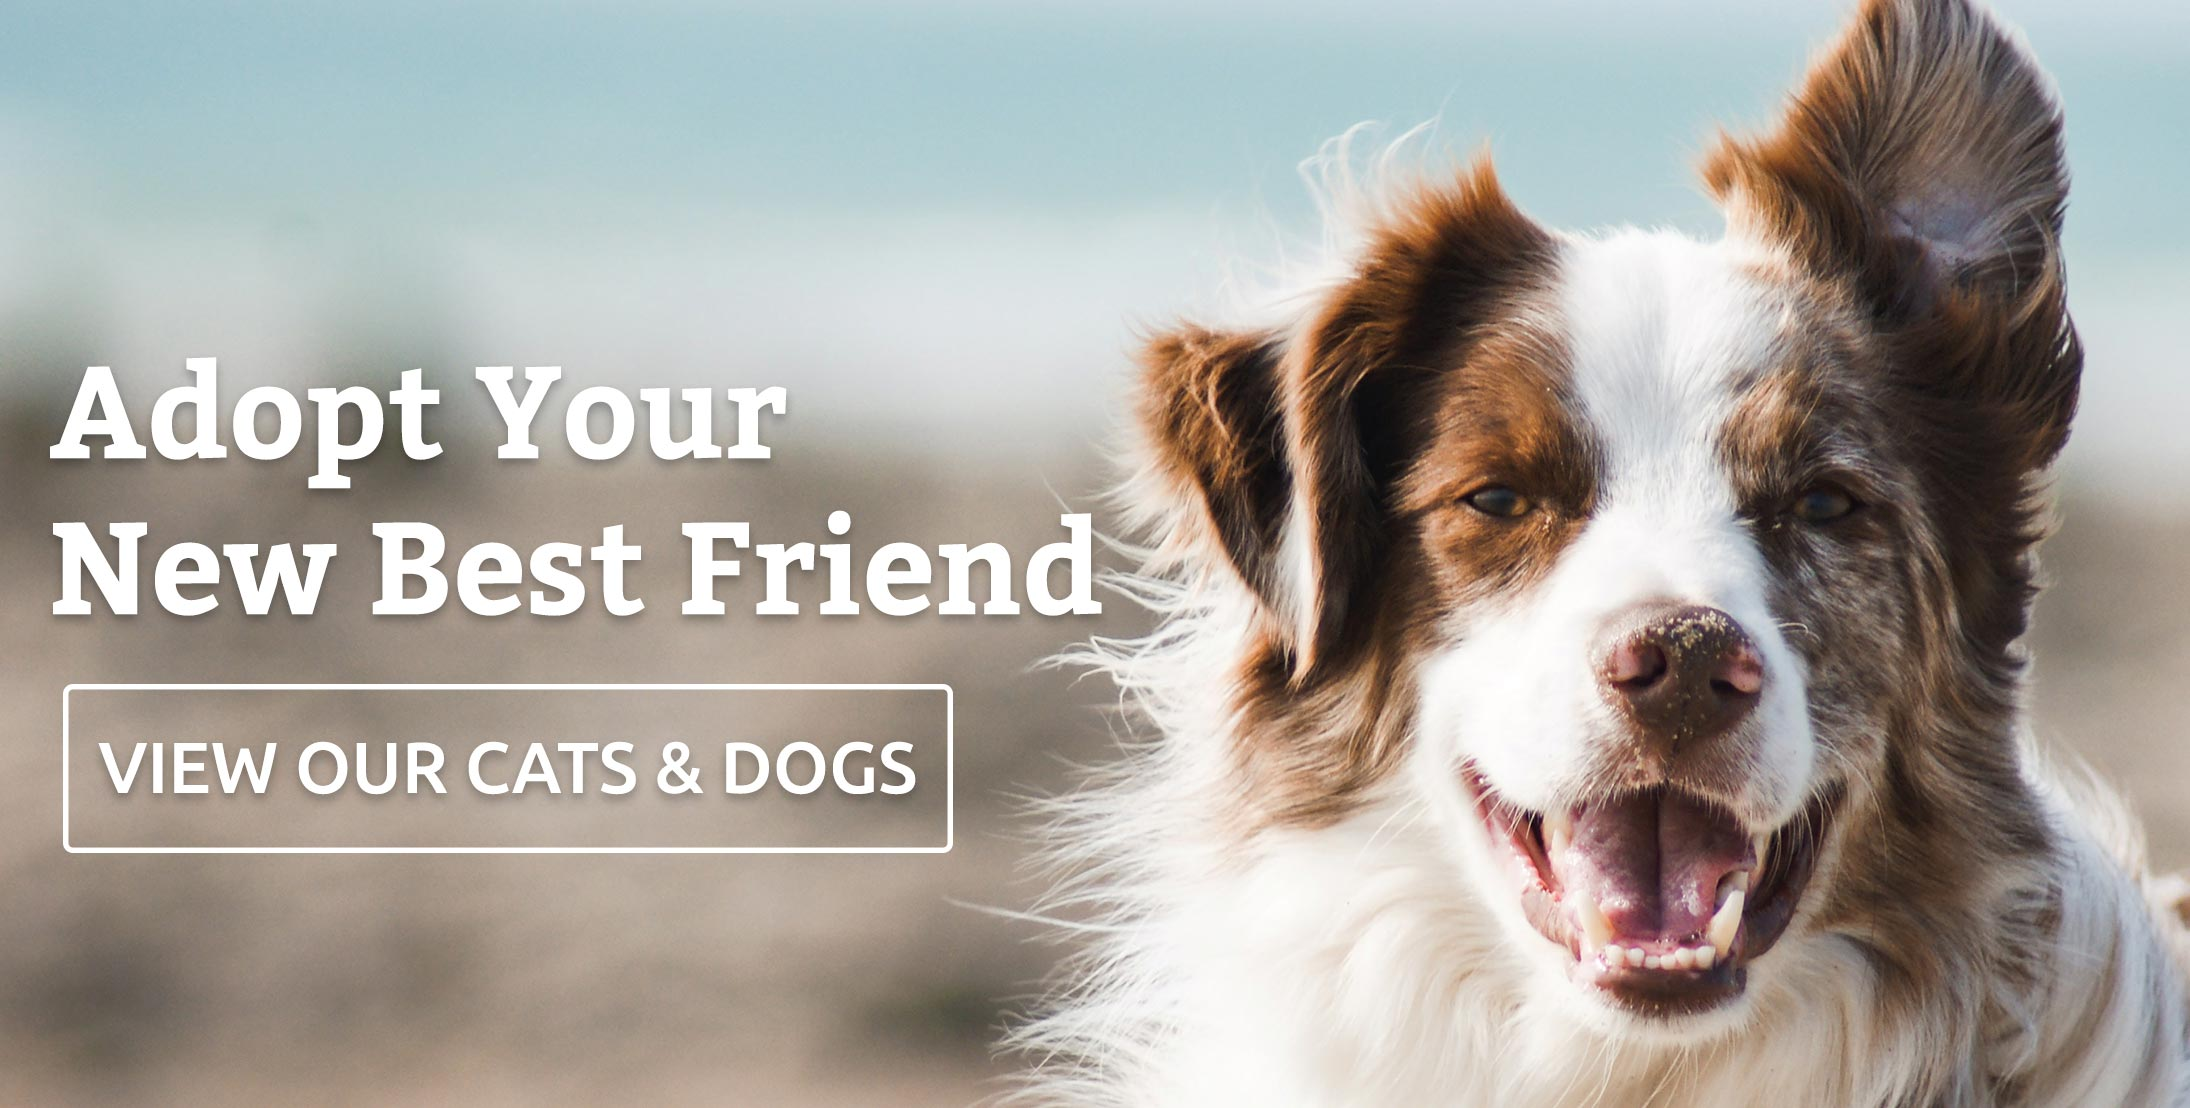 Click to view our adoptable cats and dogs.